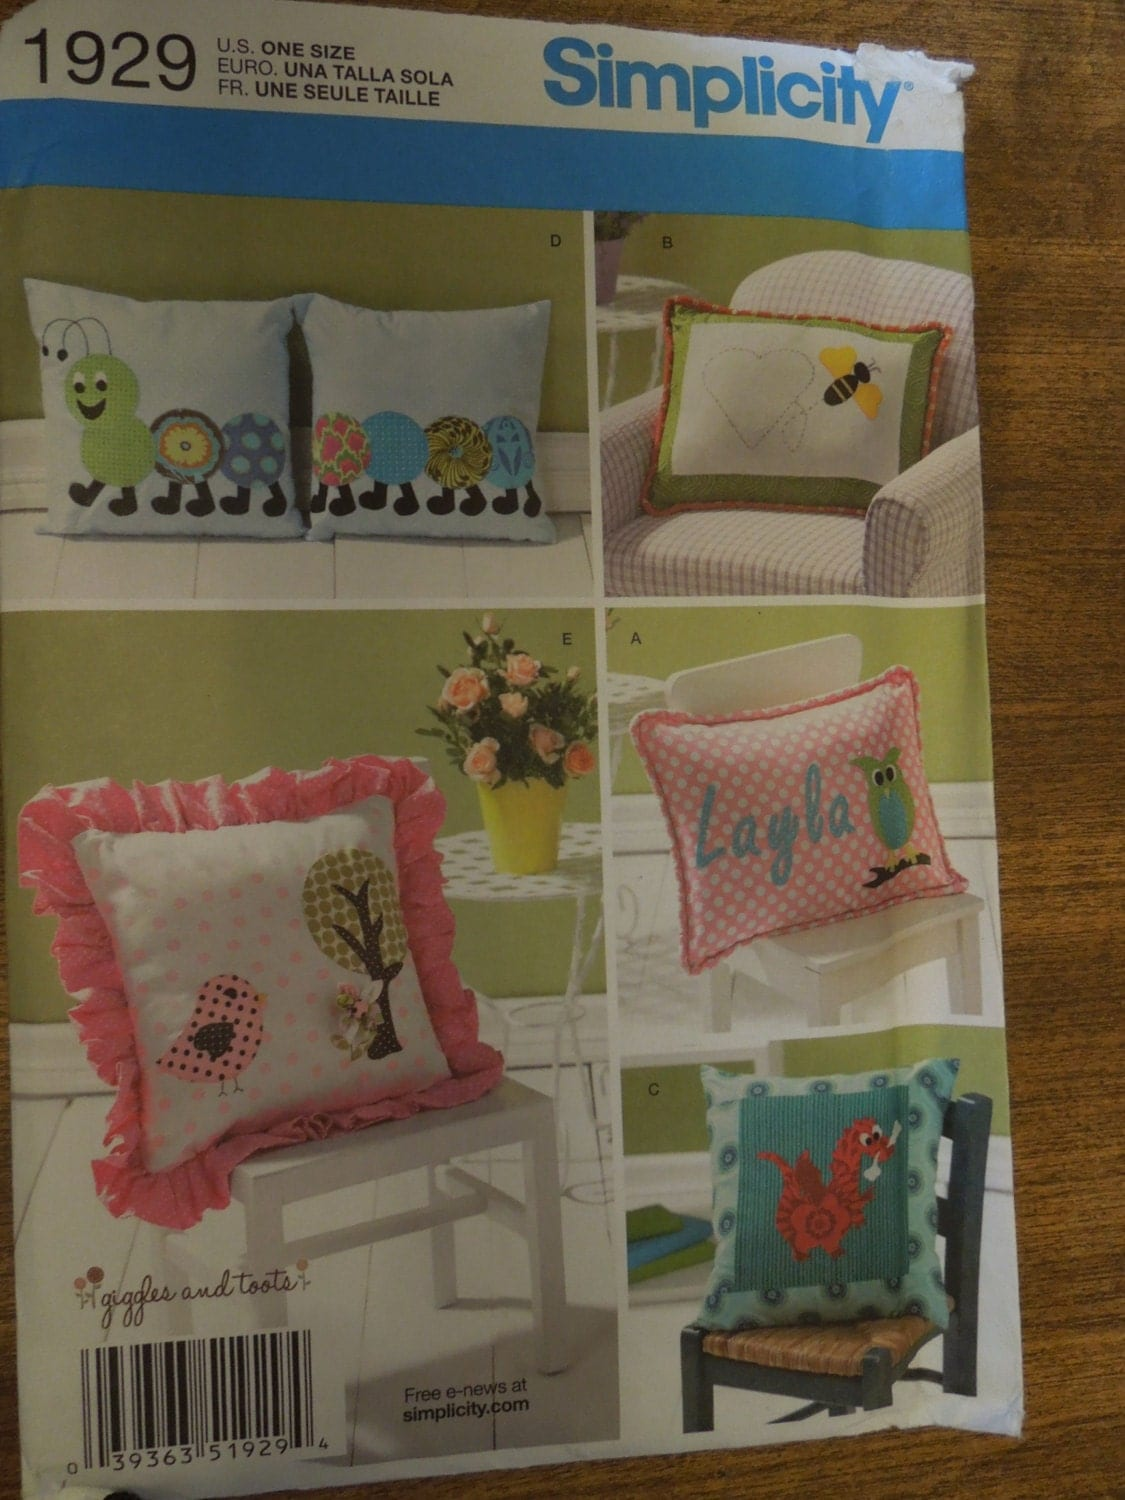 easy crafts idea simplicity 1929 pillows sewing pattern craft 1929